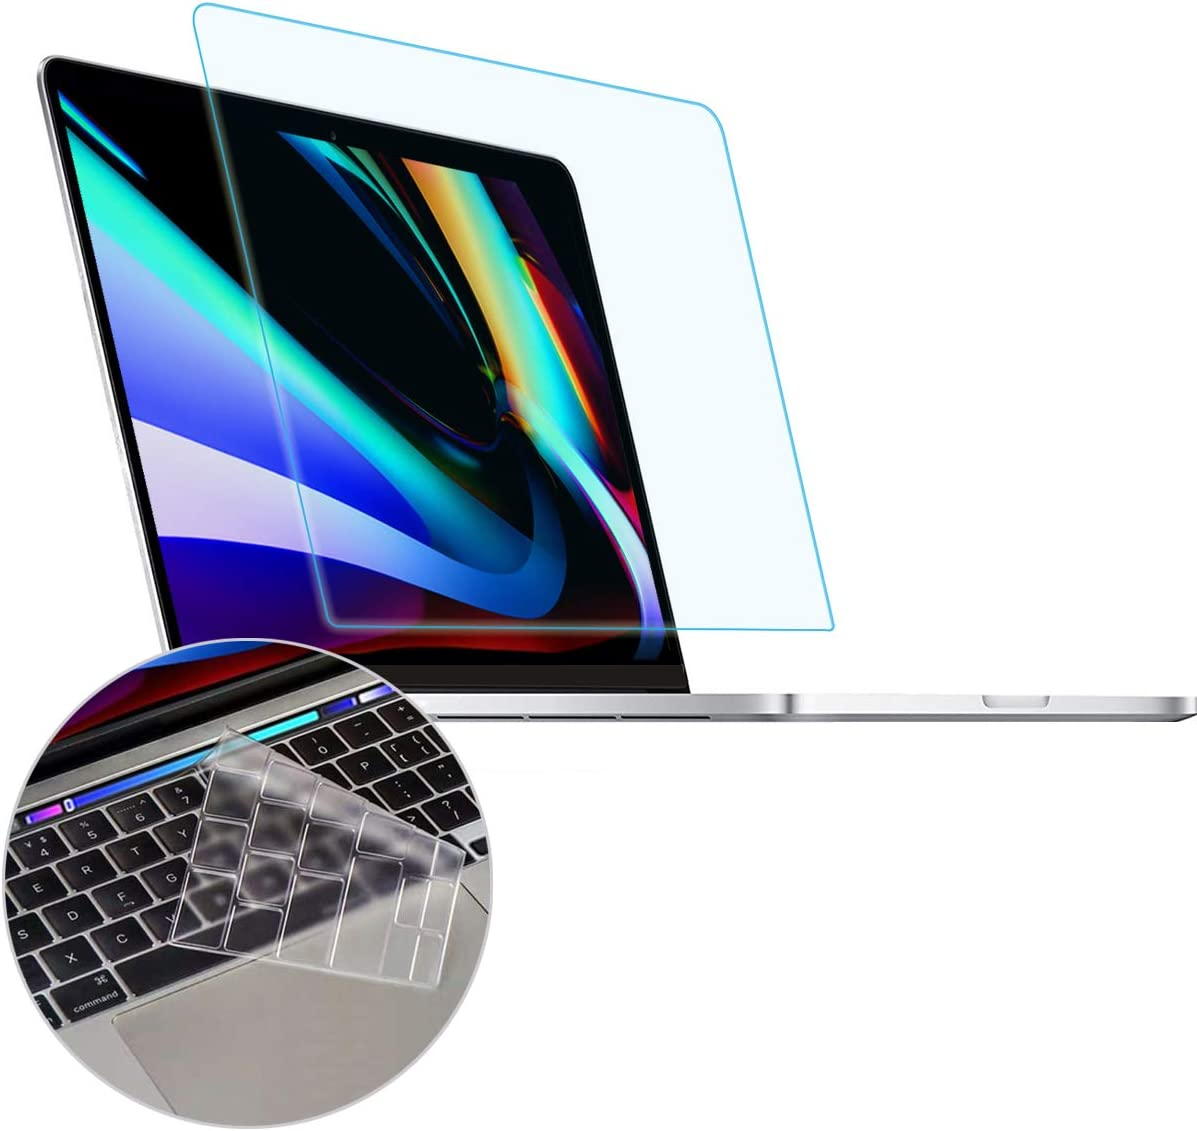 Anti Blue Light Anti Glare Screen Protector fit 2020 2019 MacBook Pro 16 Model A2141 with Touch Bar & Touch ID Bar with Gift Keyboard Cover, Eyes Protection Filter Block UV and Reduce Fingerprint